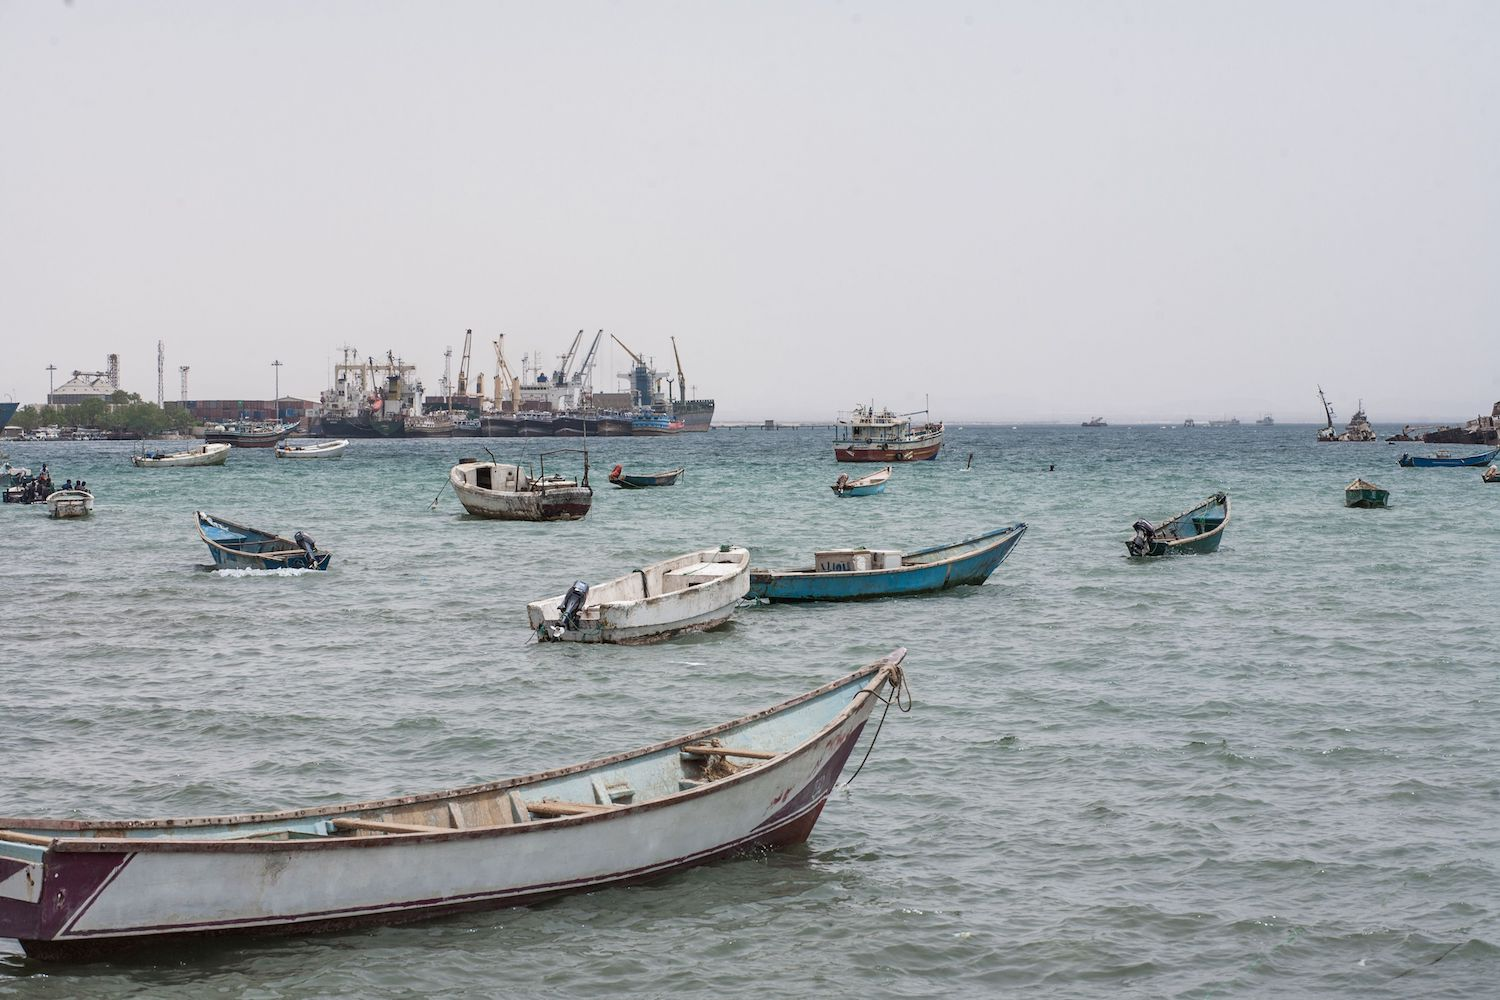 For Somaliland and Djibouti, Will New Friends Bring Benefits